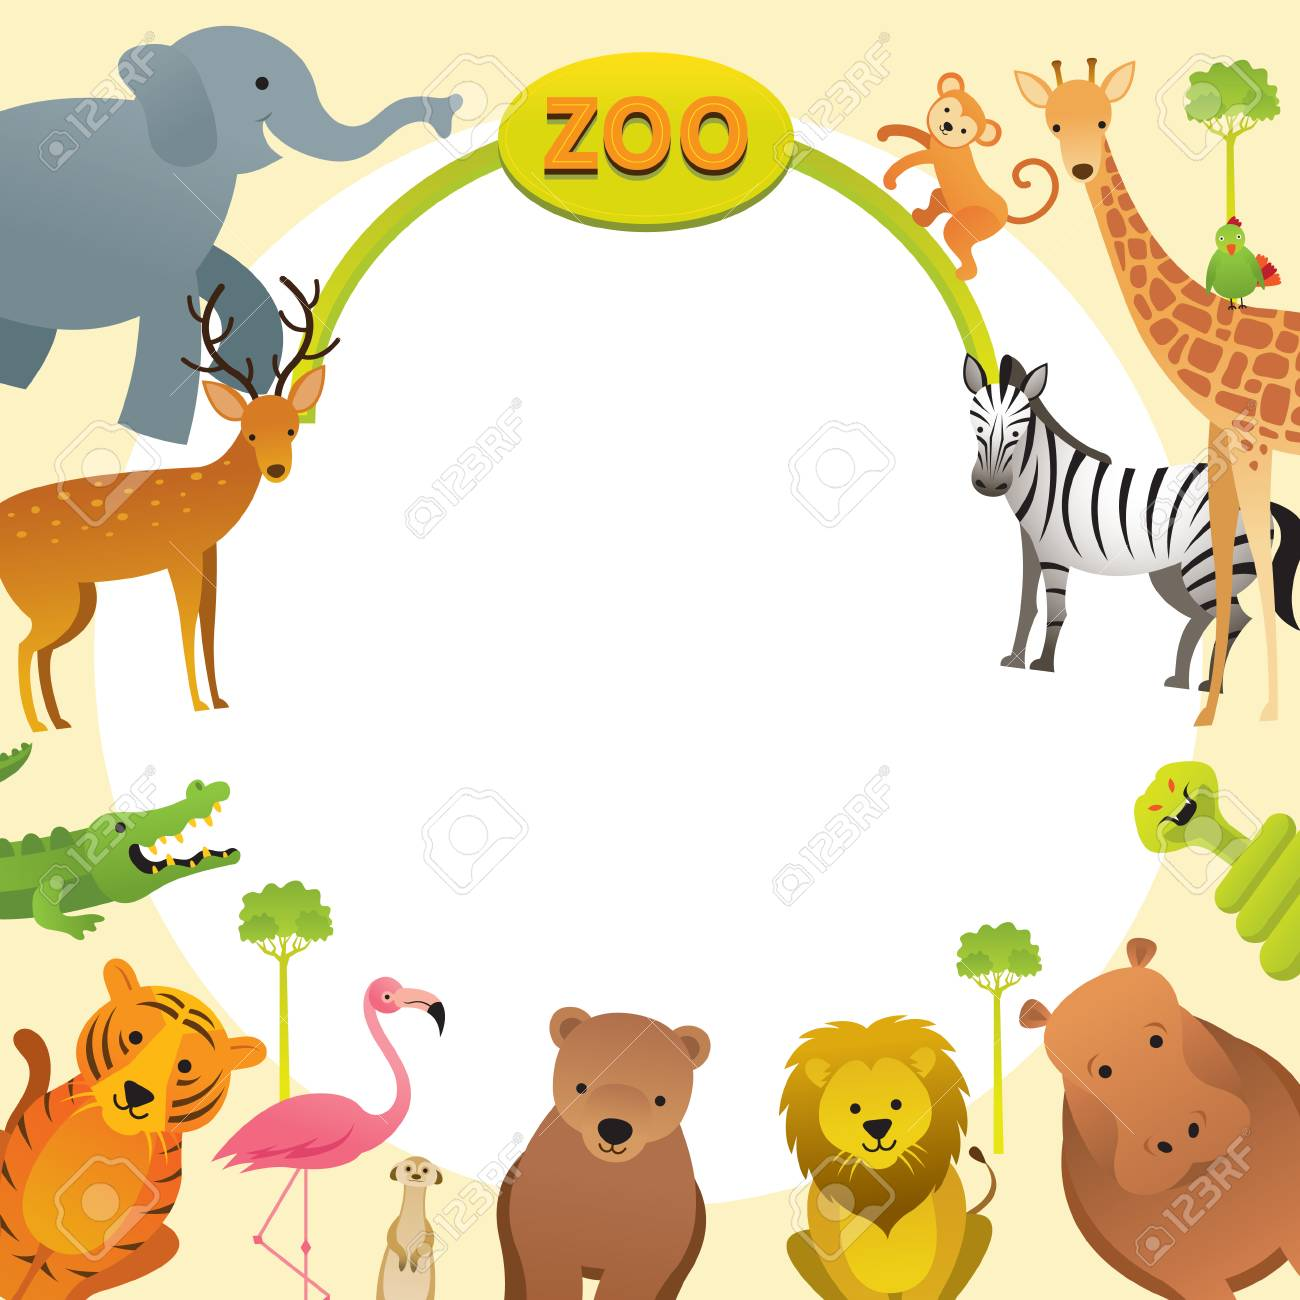 Group of Wild Animals, Zoo, Frame, Entrance Sign, Kids and Cute..